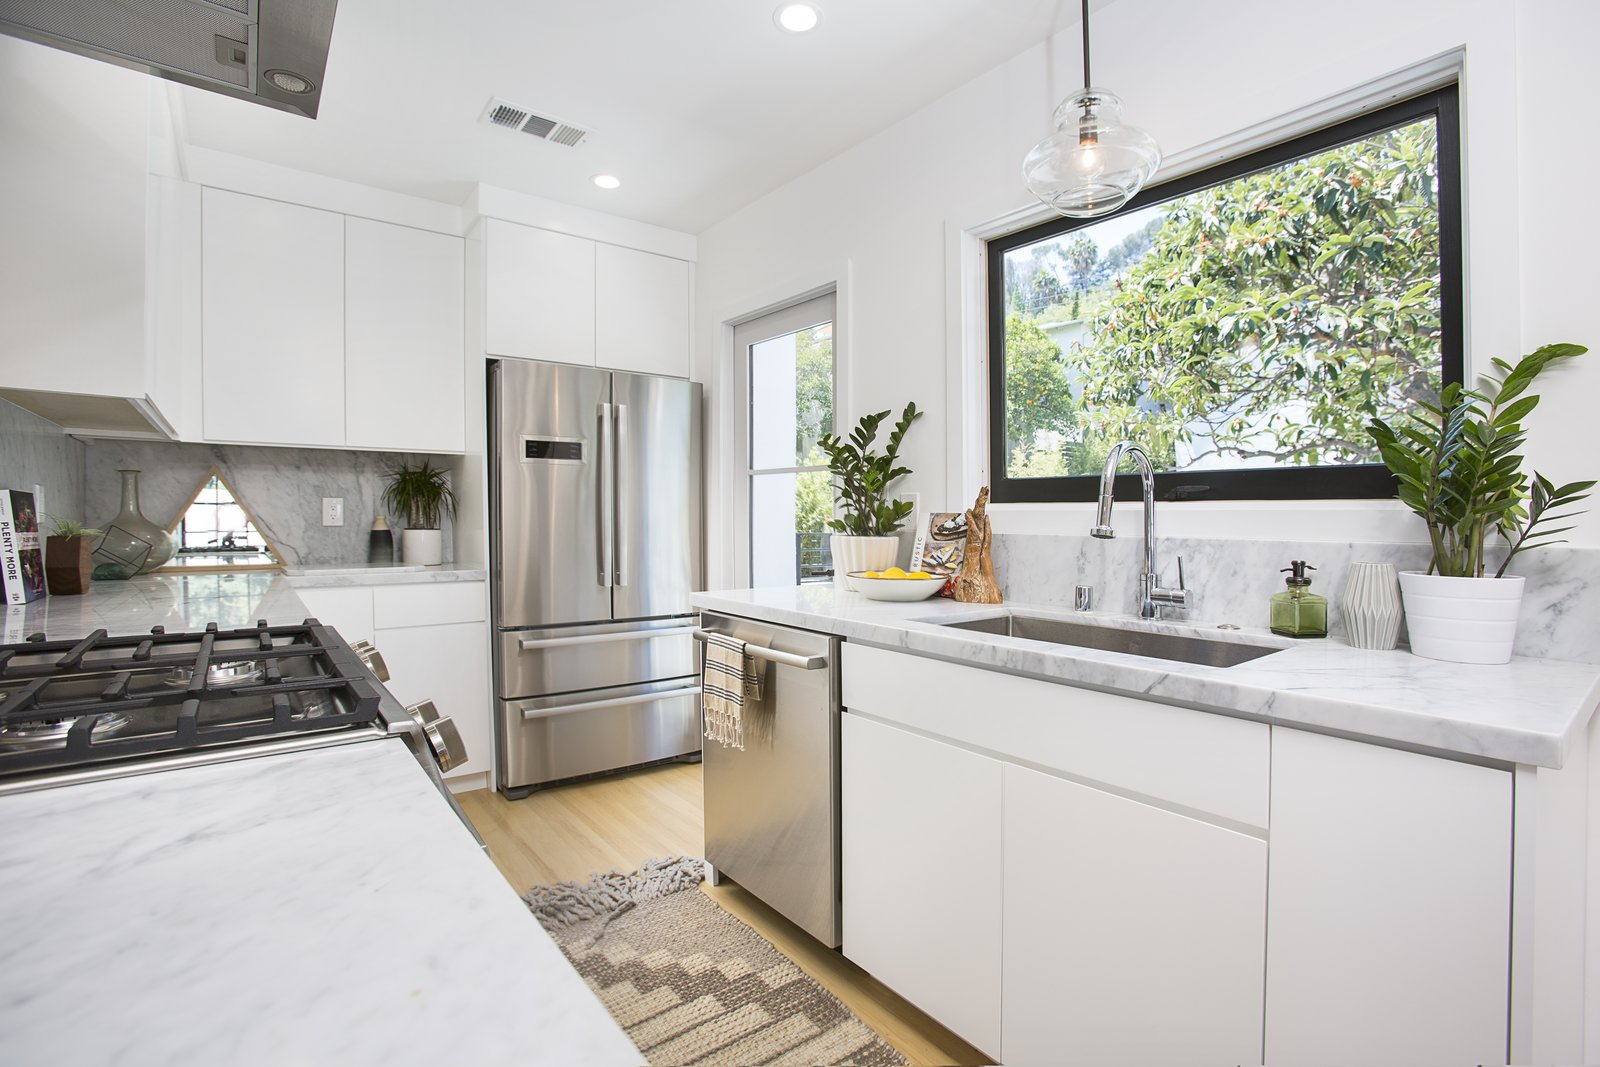 Kitchen, White, Marble, Wood, Ceiling, Recessed, Pendant, Light Hardwood, Stone Slab, Refrigerator, Dishwasher, Range, Range Hood, and Undermount  Best Kitchen Range White Dishwasher Pendant Refrigerator Recessed Photos from Silverlake on Riverside Terrace